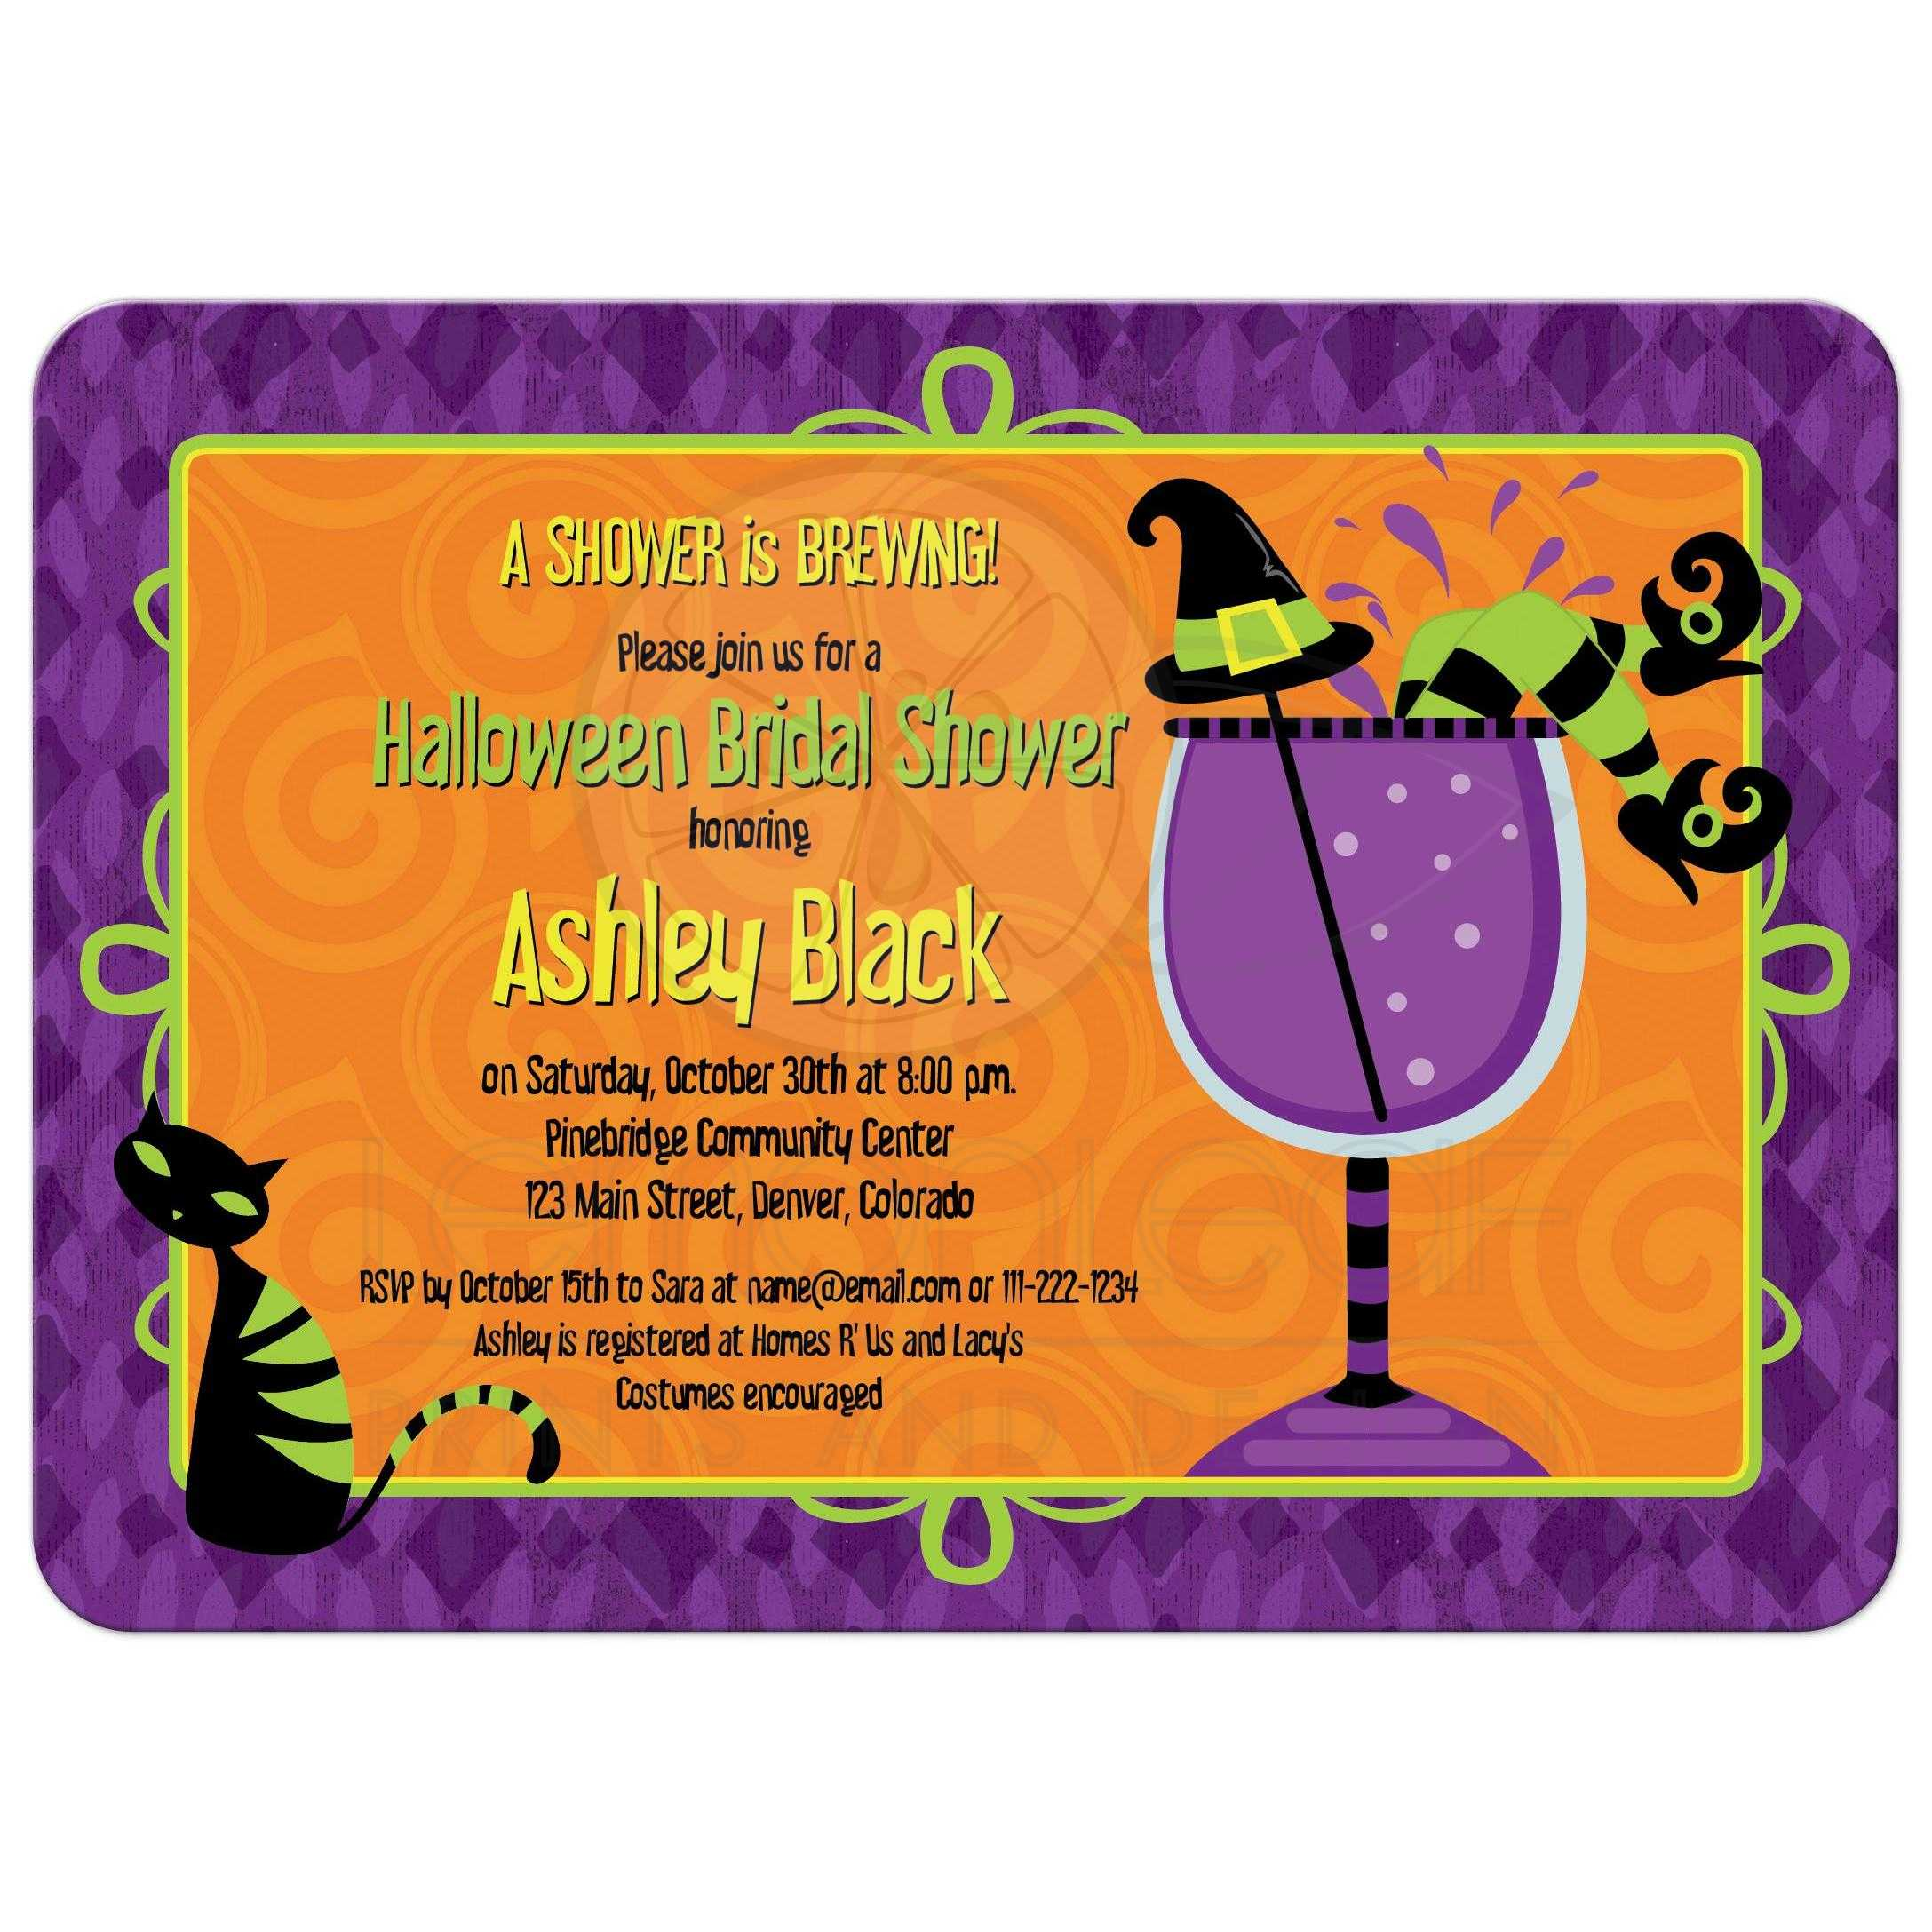 Cocktail Party Name Ideas Part - 24: ... Witchesu0027 Brew Halloween Bridal Shower Cocktail Party Invitation